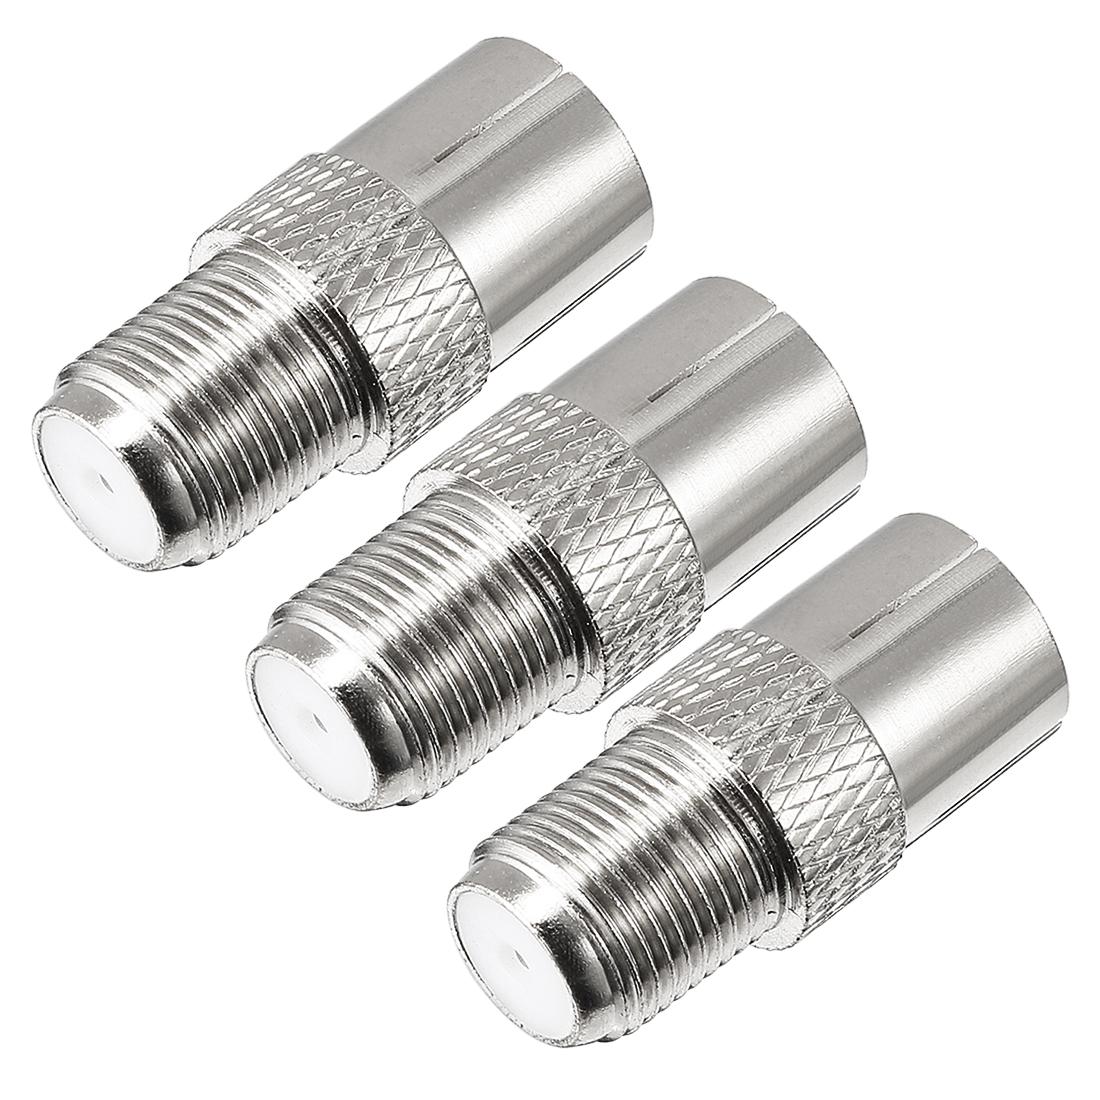 3 Pcs Silver Tone BSP F Female to PAL Female Jack RF Coaxial Adapter Connector